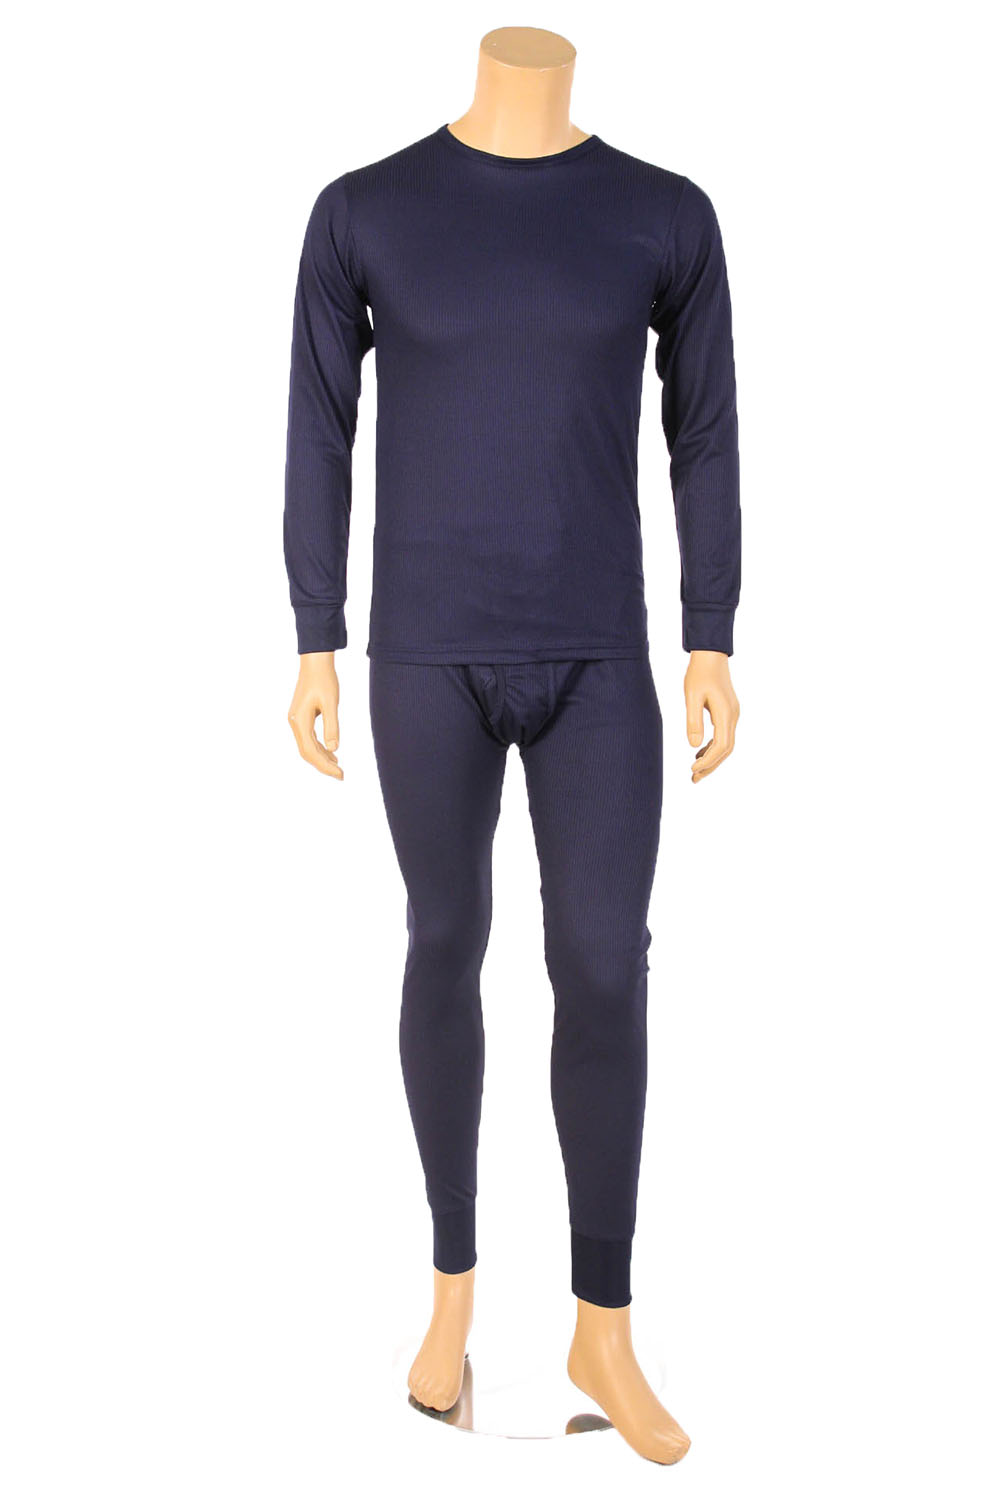 Men's Underwear - Boxers, Briefs & Knit Styles Get comfort when you want it the most with Blair's selection of men's underwear. Whether you are looking for boxers or briefs, an undershirt or even a warm union suit, our selection has something for every man.